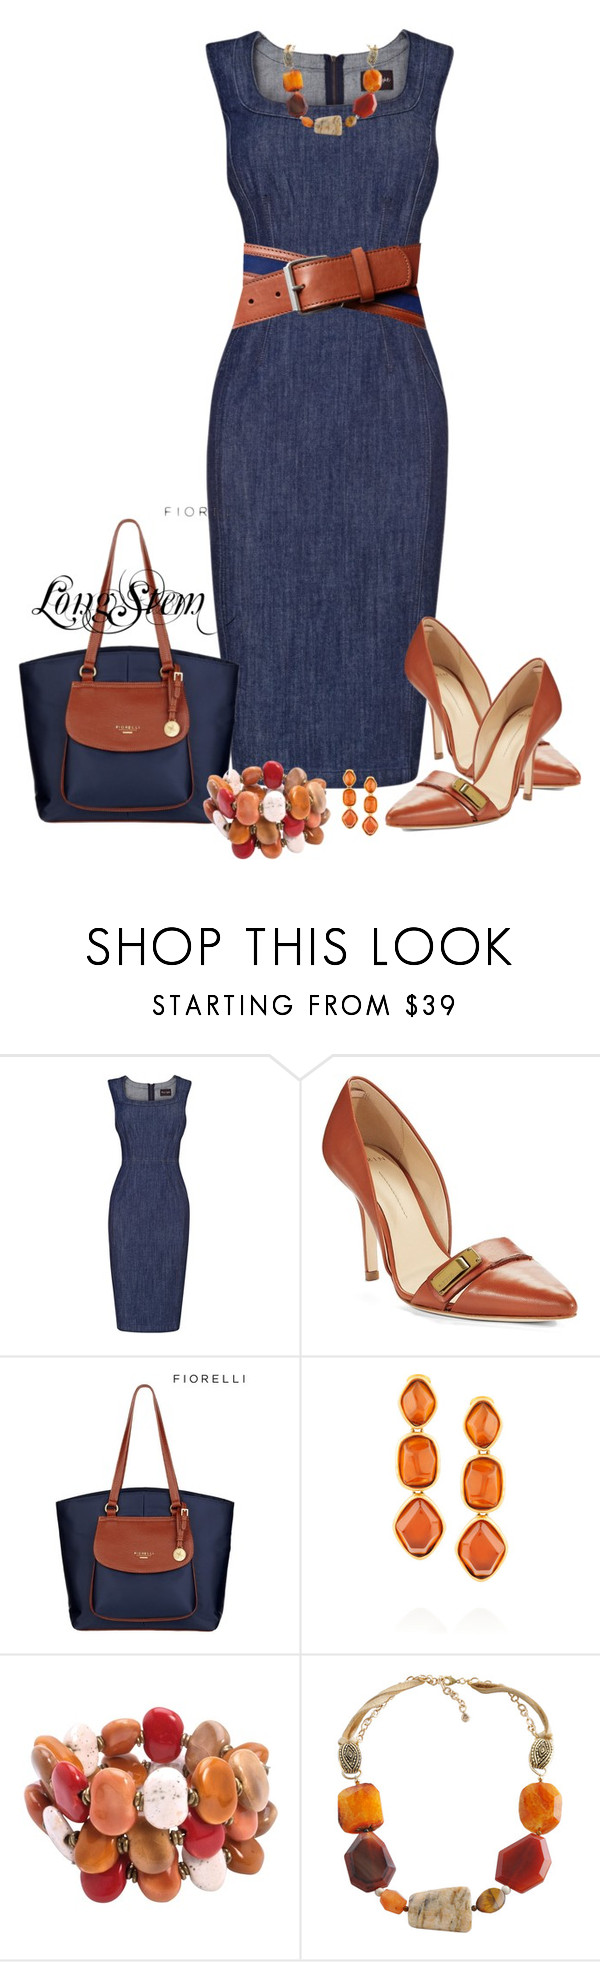 """""""Untitled #587"""" by longstem ❤ liked on Polyvore featuring Phase Eight, 7 Hills, AERIN, Lipsy, Oscar de la Renta, Kazuri and Barse"""